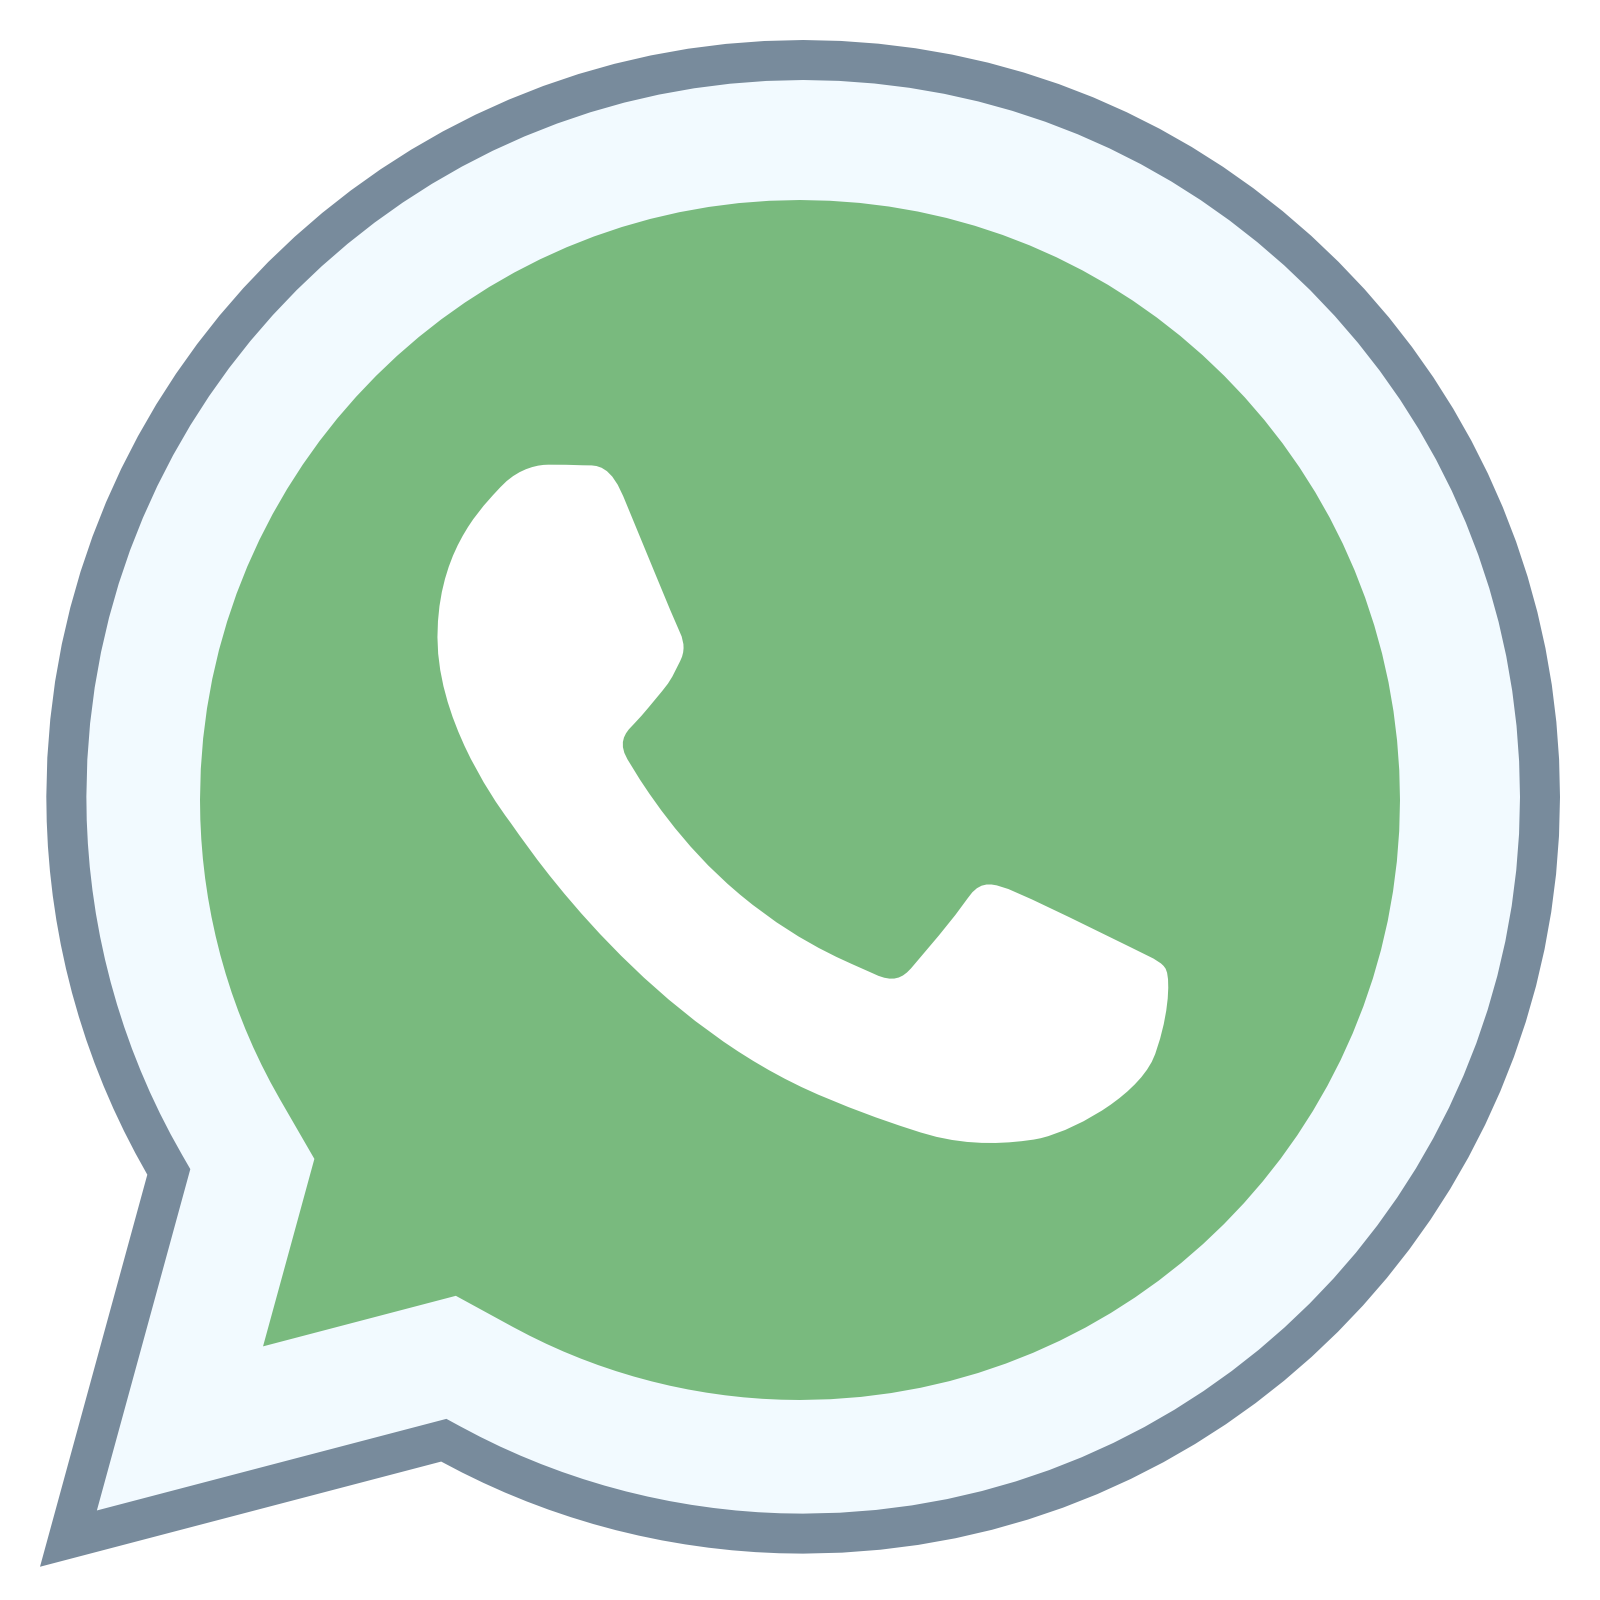 WhatsApp Icon - Free Download at Icons8